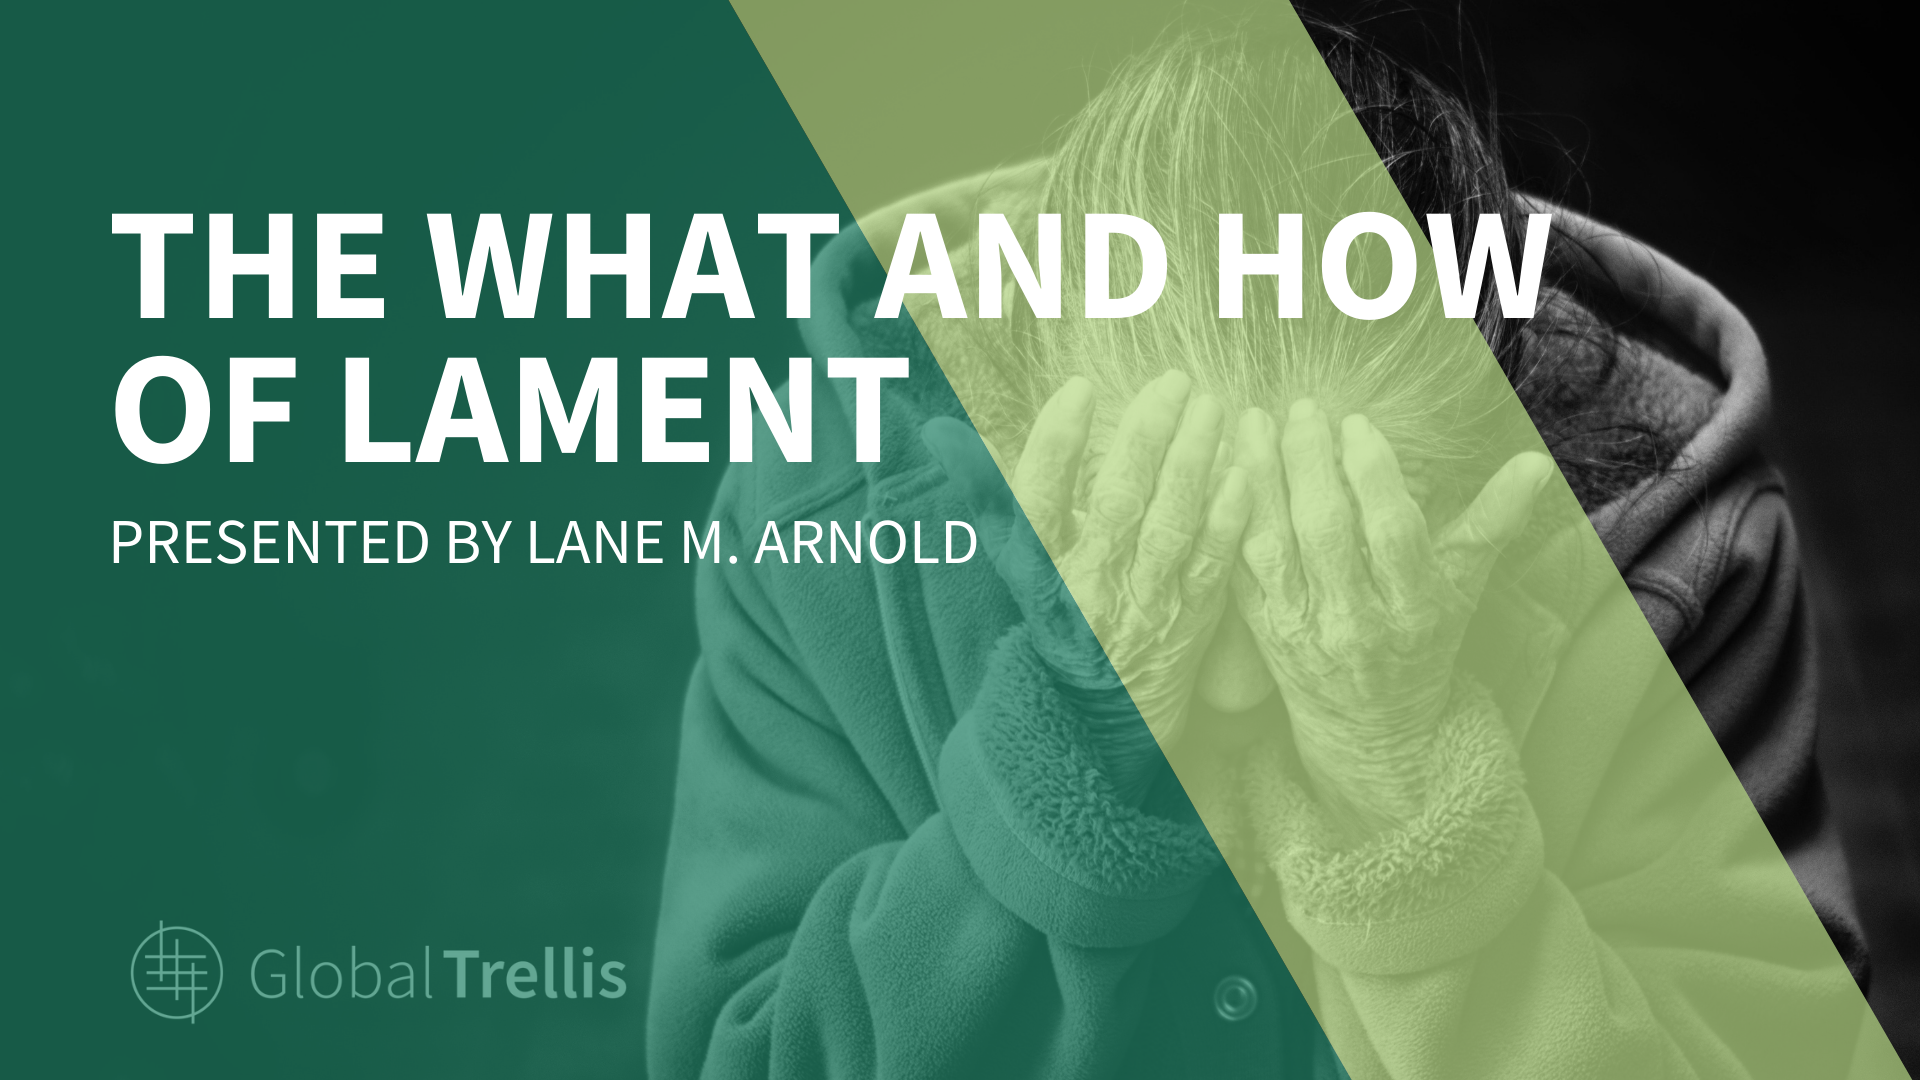 The What and How of Lament